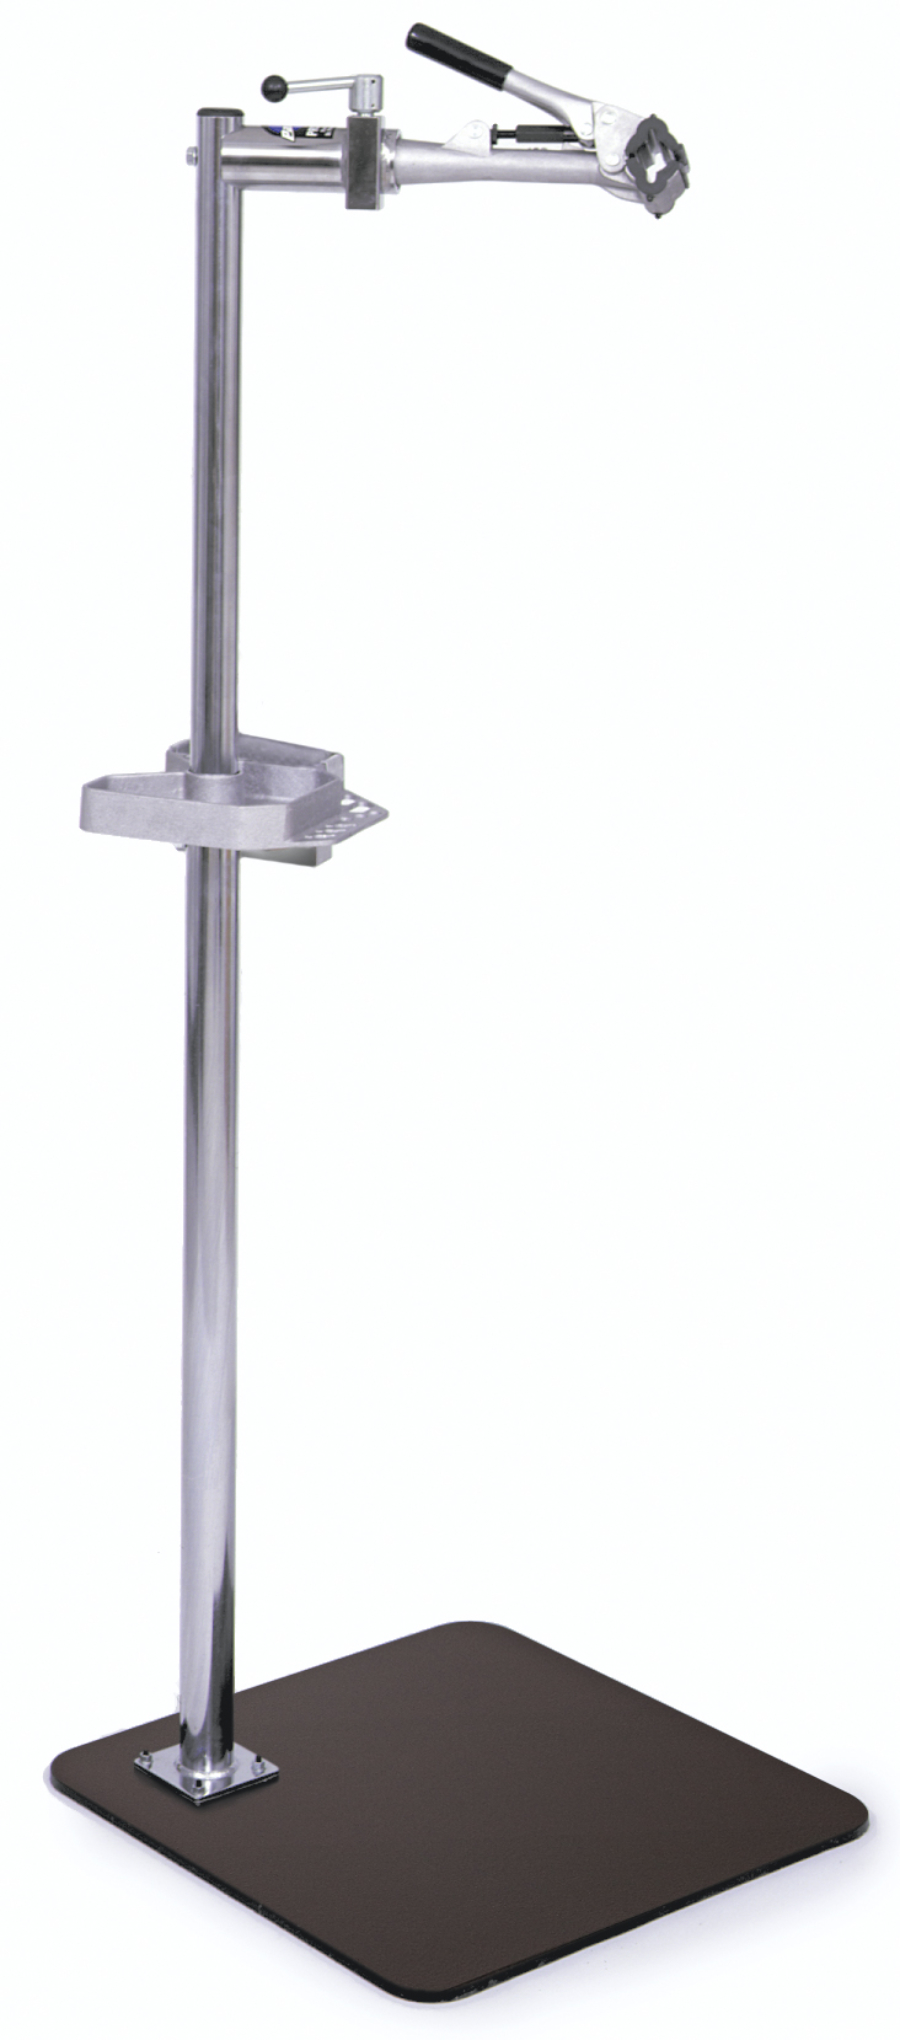 Prs 3 Os 1 Deluxe Single Arm Repair Stand Park Tool